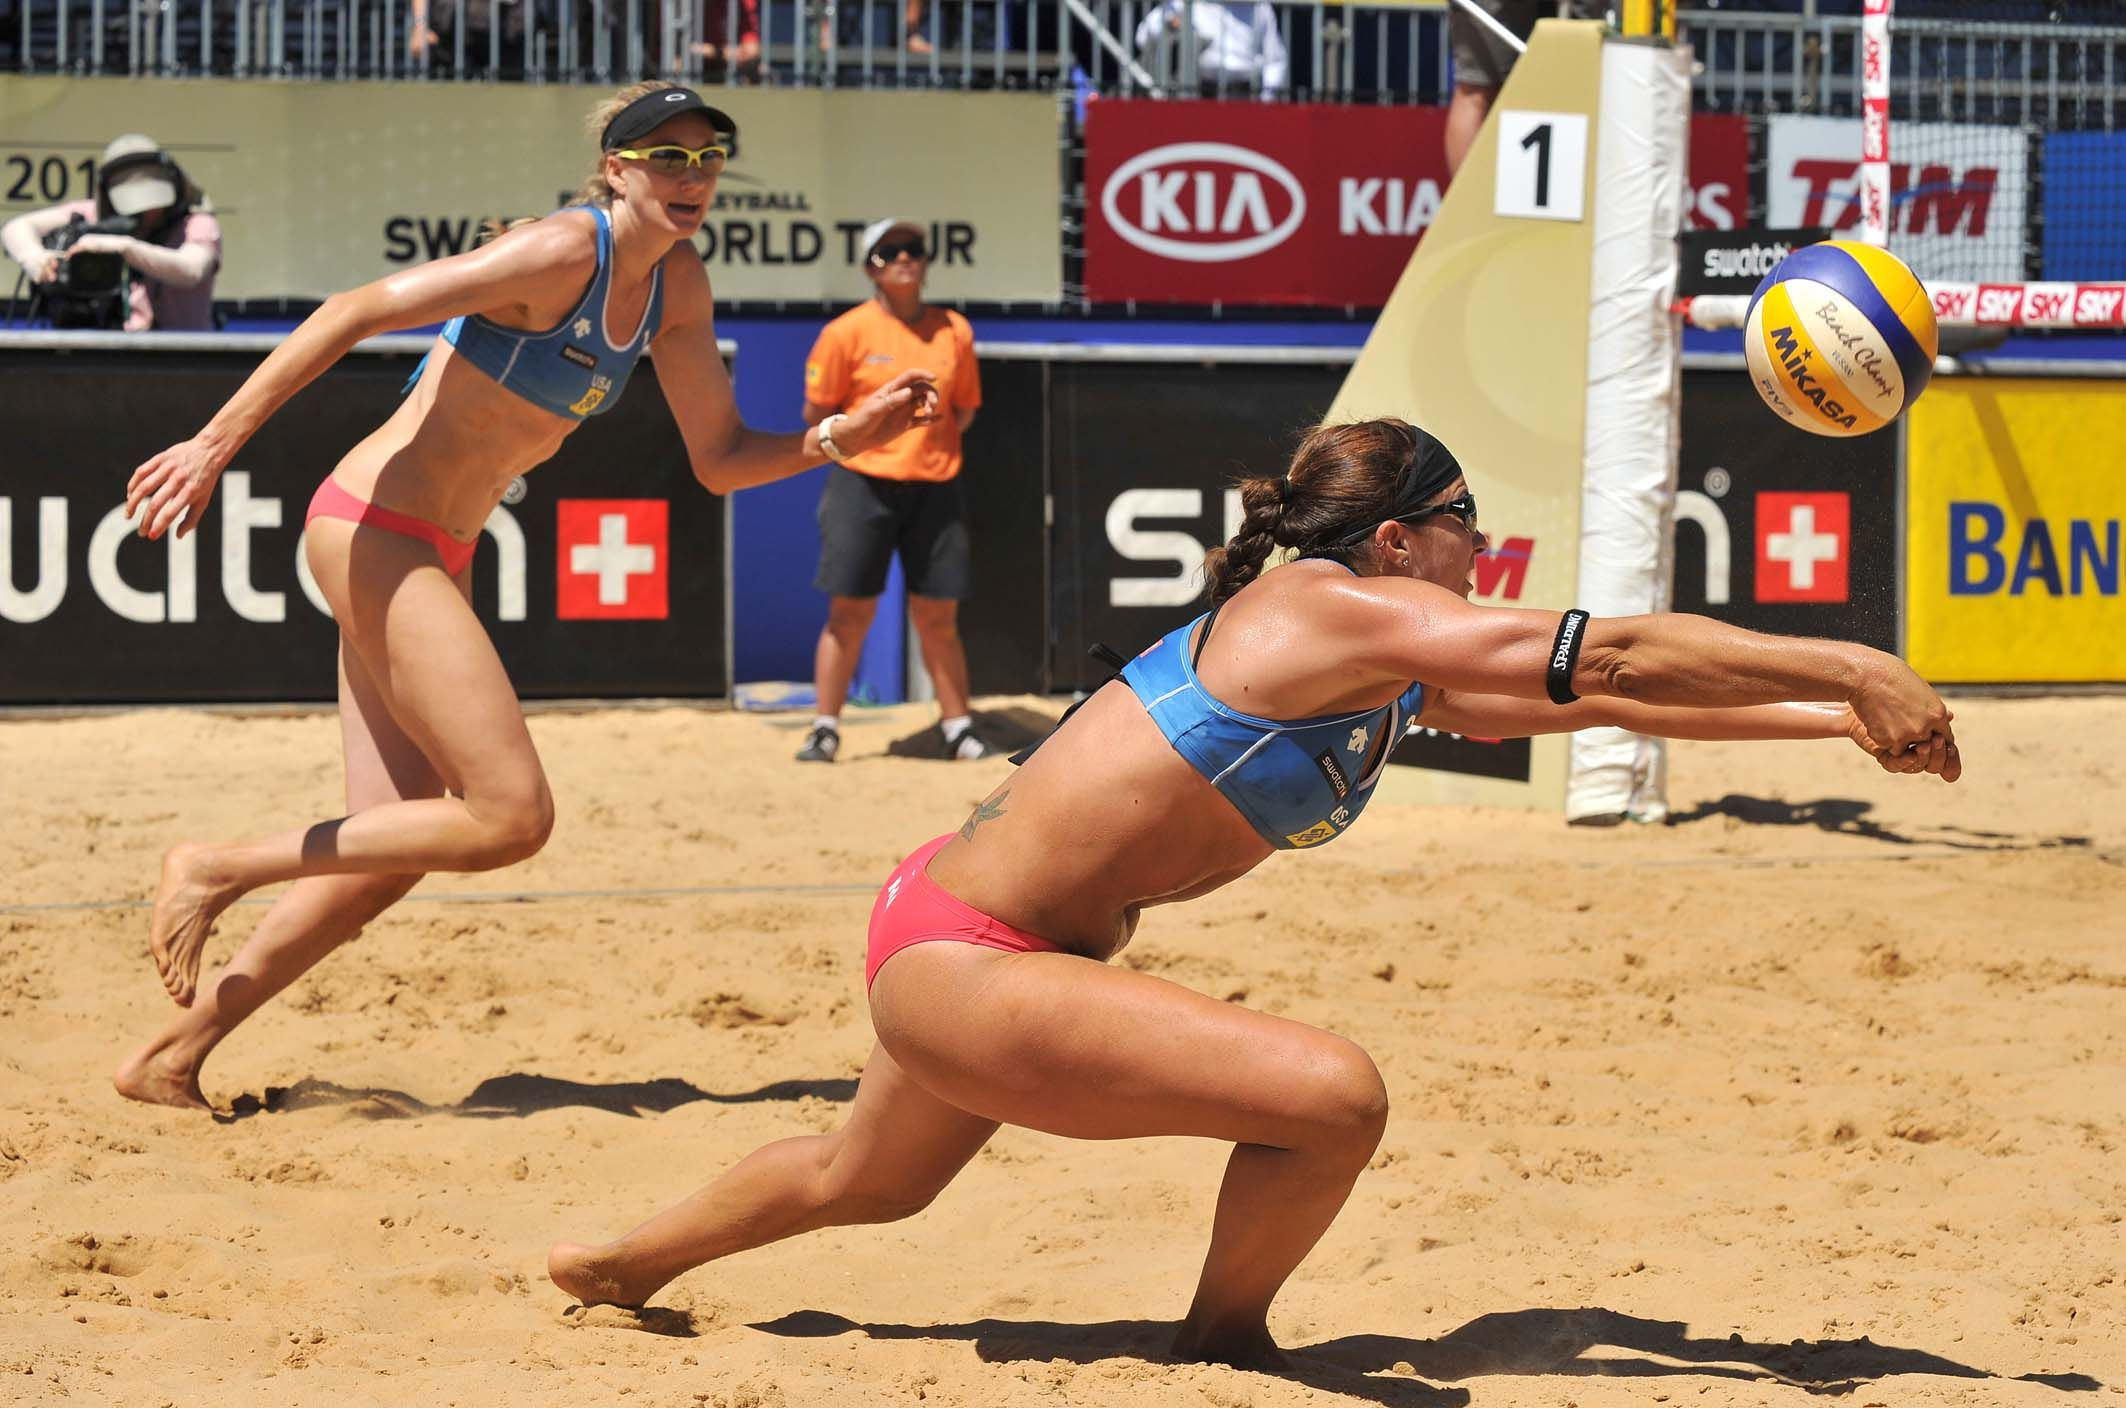 Misty May Treanor Usa Receives The Ball During The Match Against Larissa Juliana Brazil Beach Volleyball Misty May Treanor Muscle Women